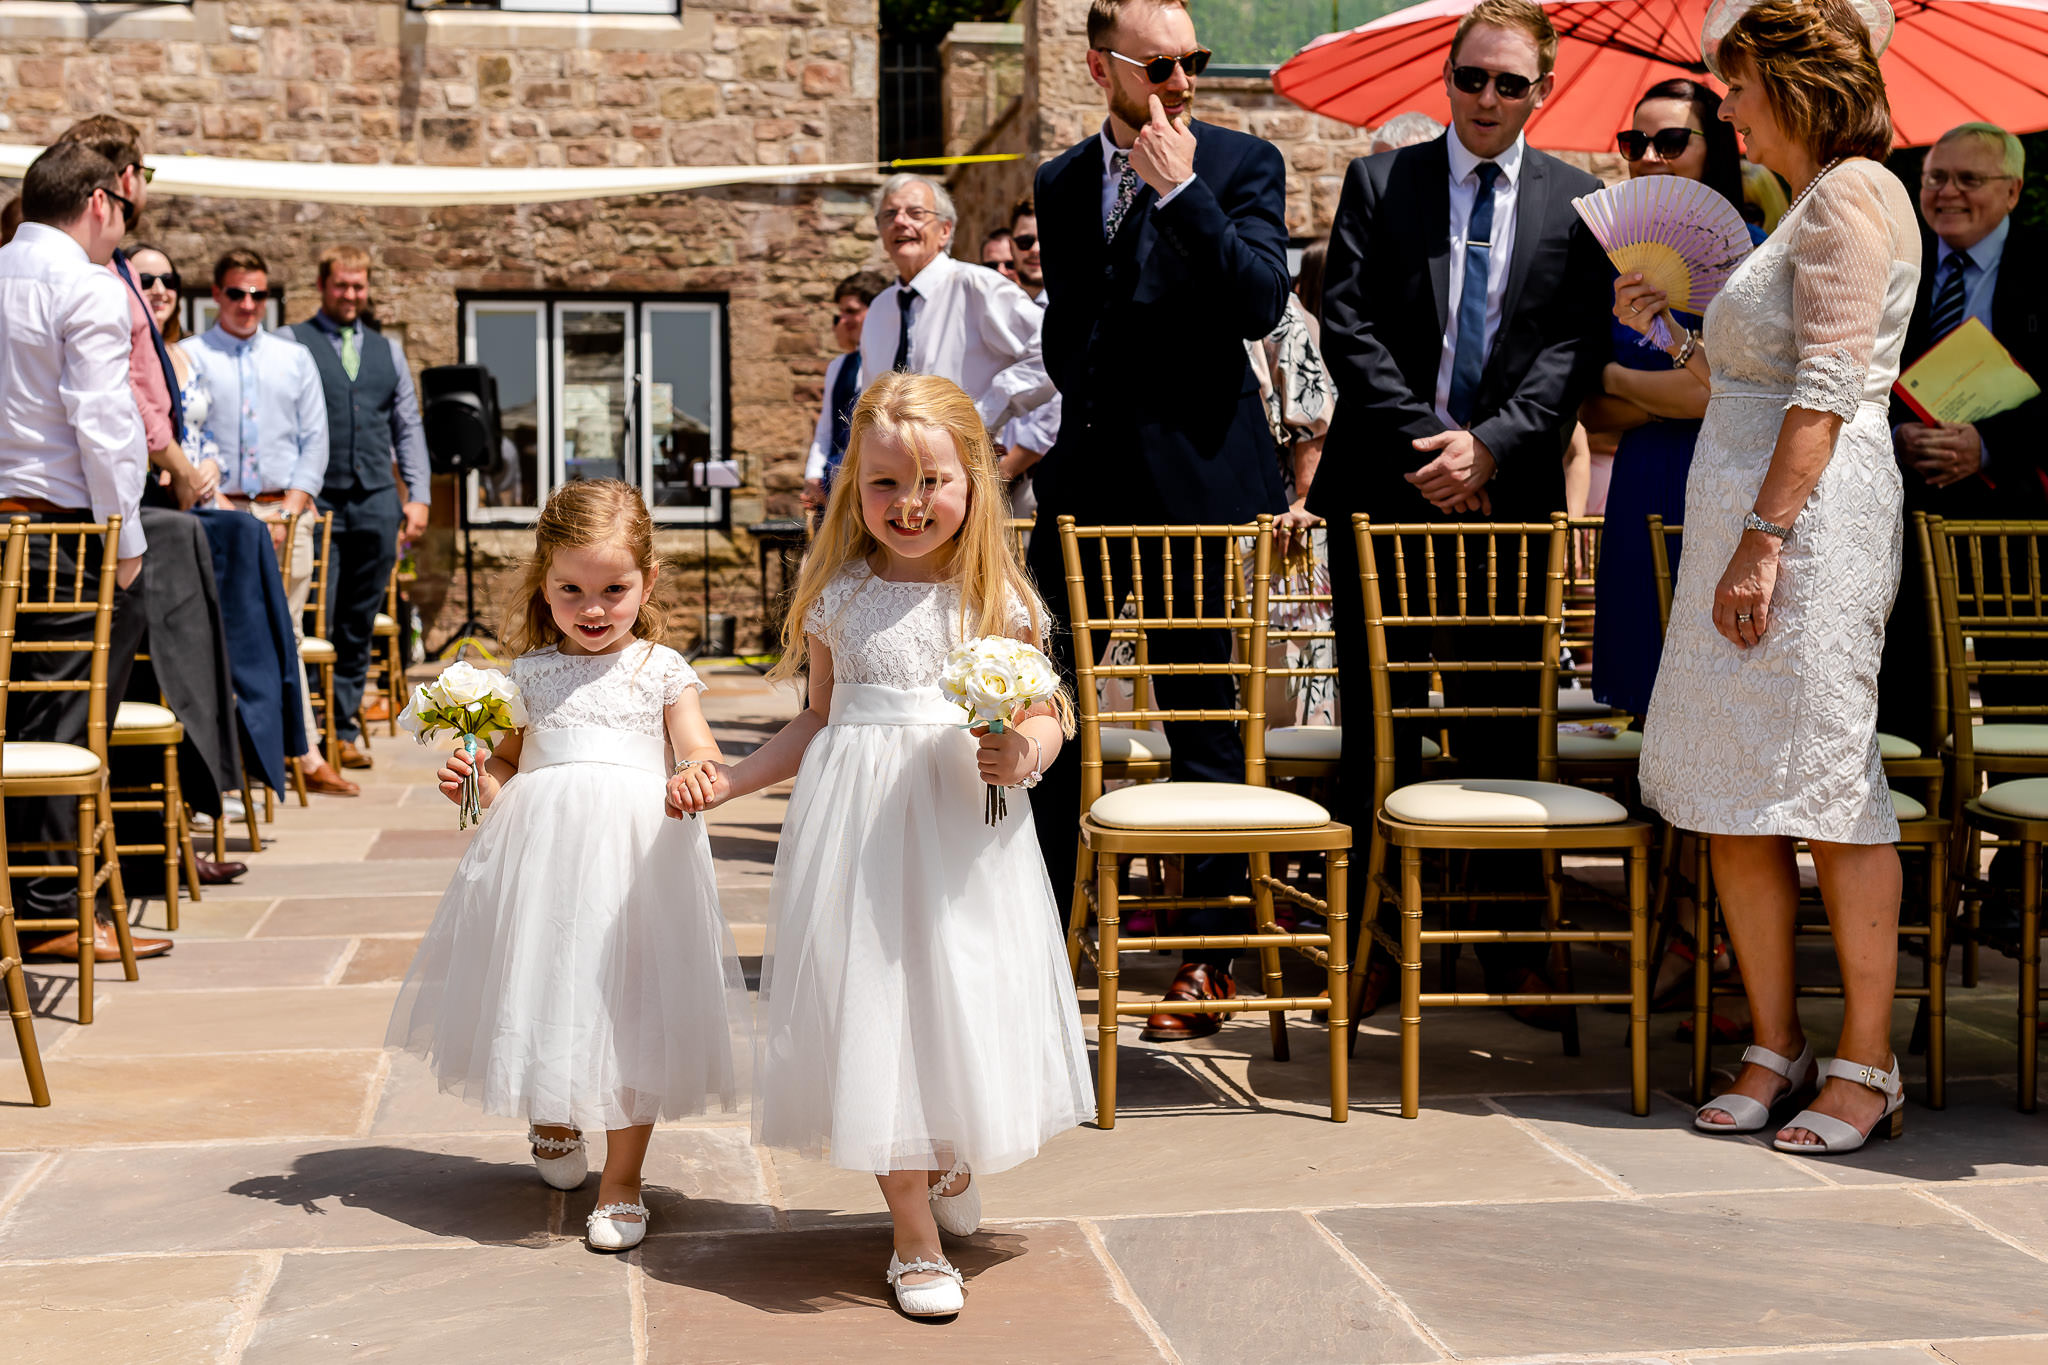 Art by Design - Caer Llan Wedding Photography - Flower girls